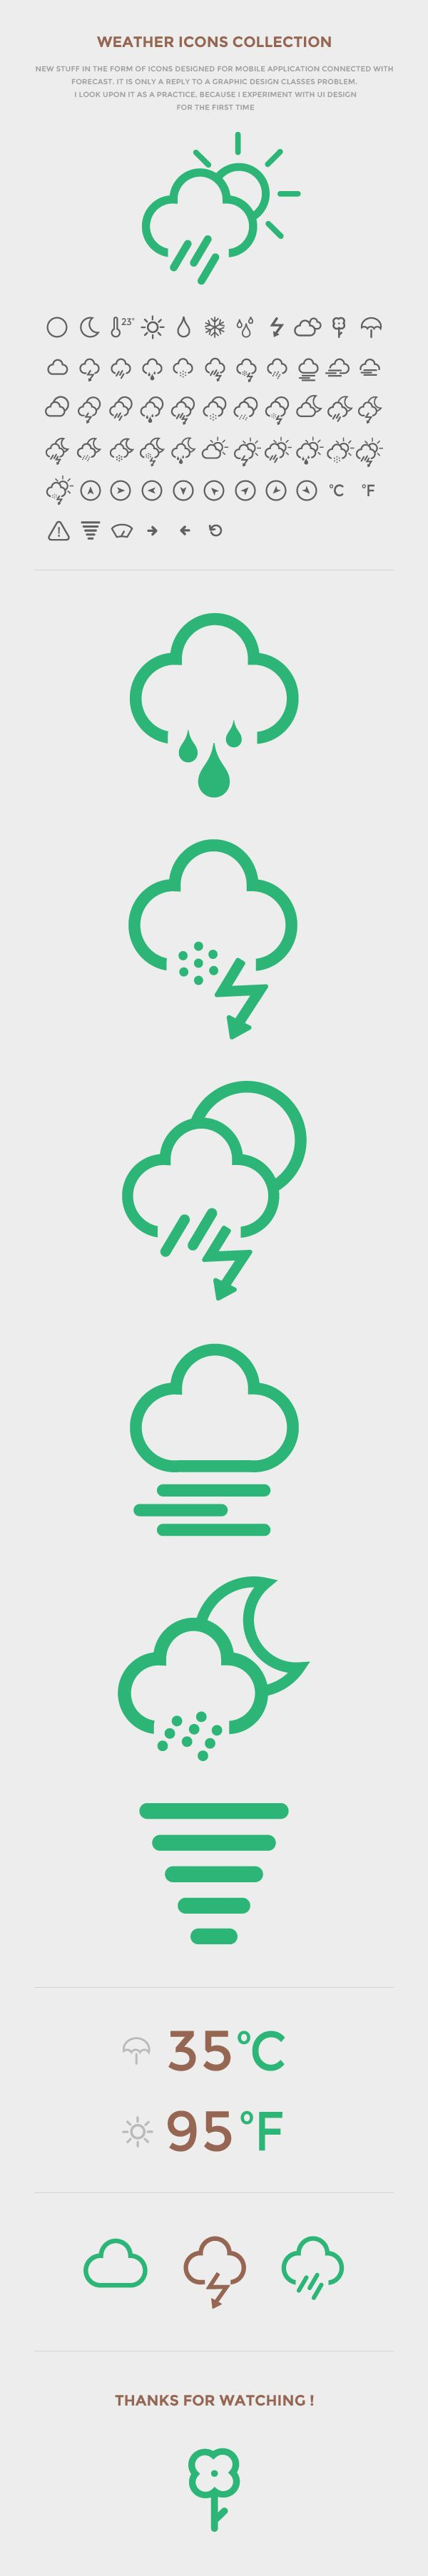 Weather Icon Set 2013 by Tomczyk Maciej, via Behance